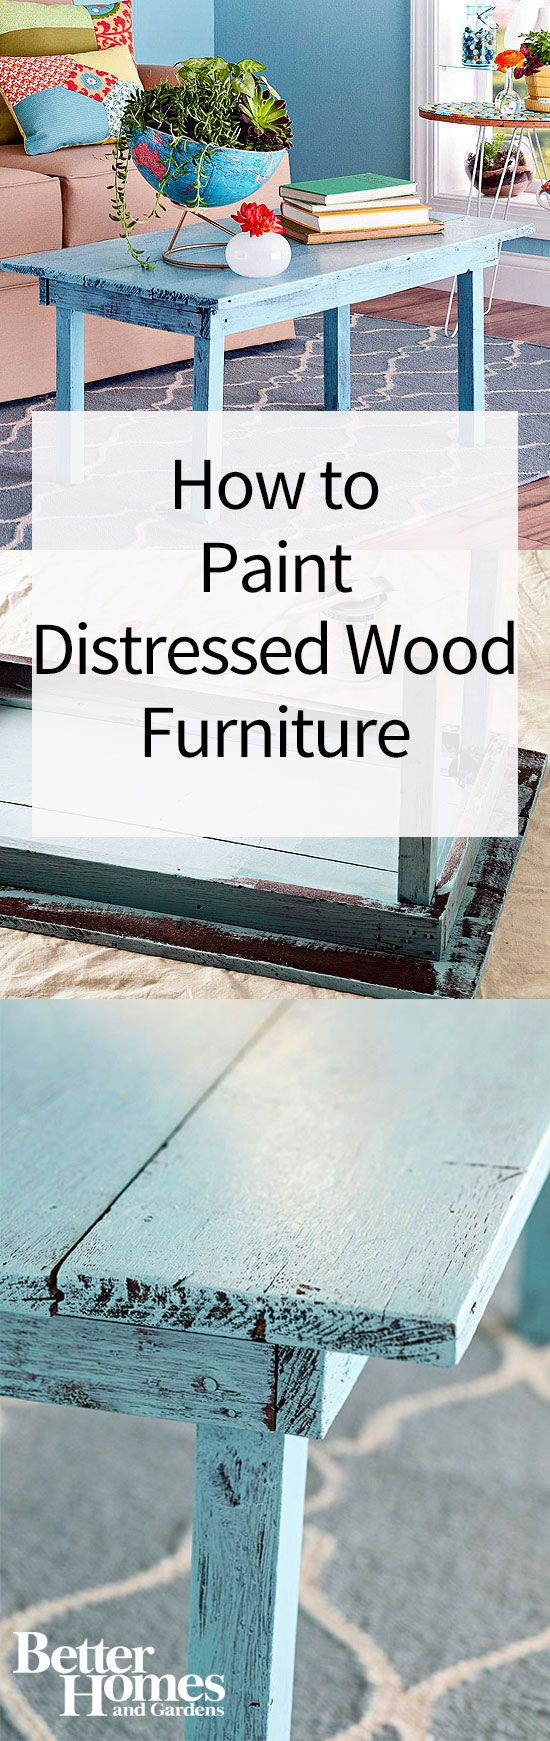 Use this distressed furniture technique to age wood furniture with paint. Distressed wood furniture is perfect for rooms decorated with flea market finds and antique treasures, but the best thing about this technique is you don't have to buy old to get a charming patina. Learn how to distress furniture in almost no time with this easy guide.